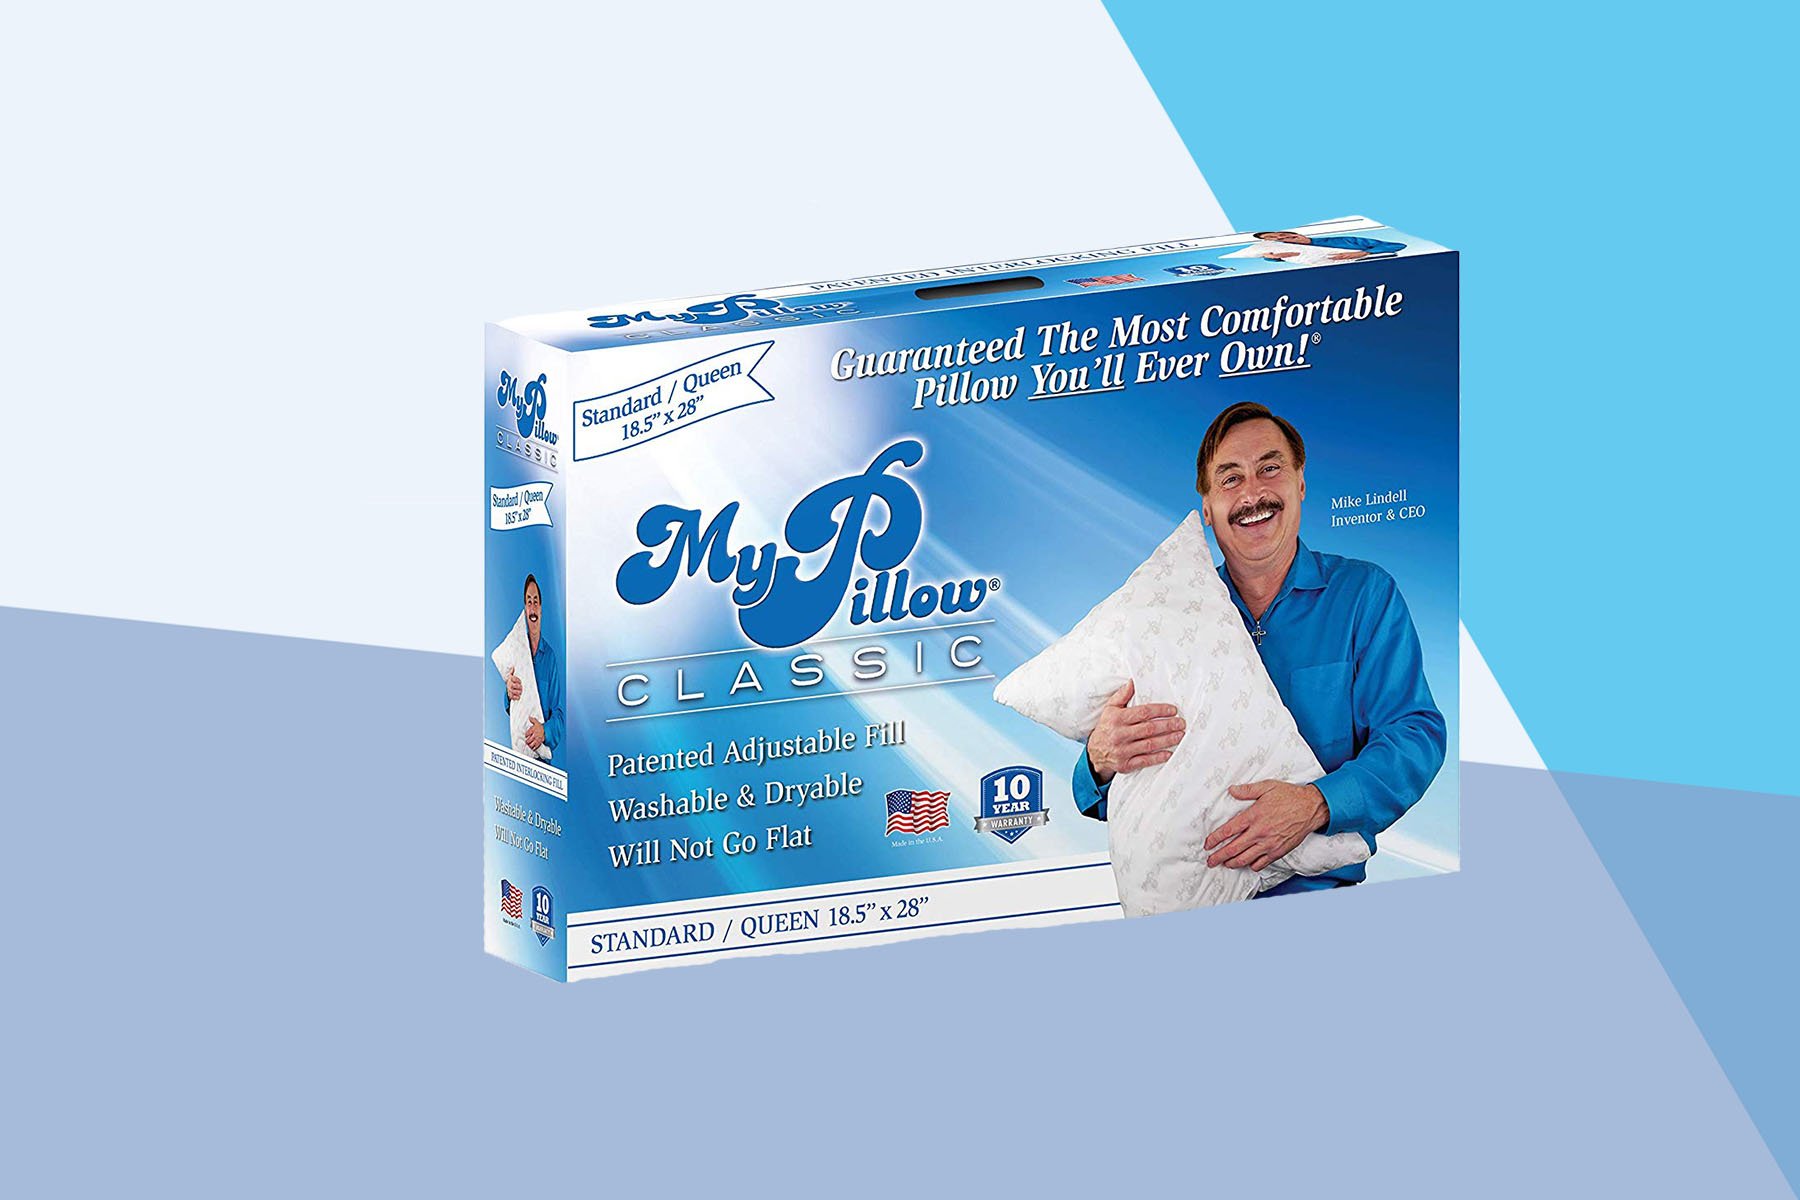 The  Most Comfortable Pillow You'll Ever Own  Comes in Four Firmness Levels for Every Type of Sleeper